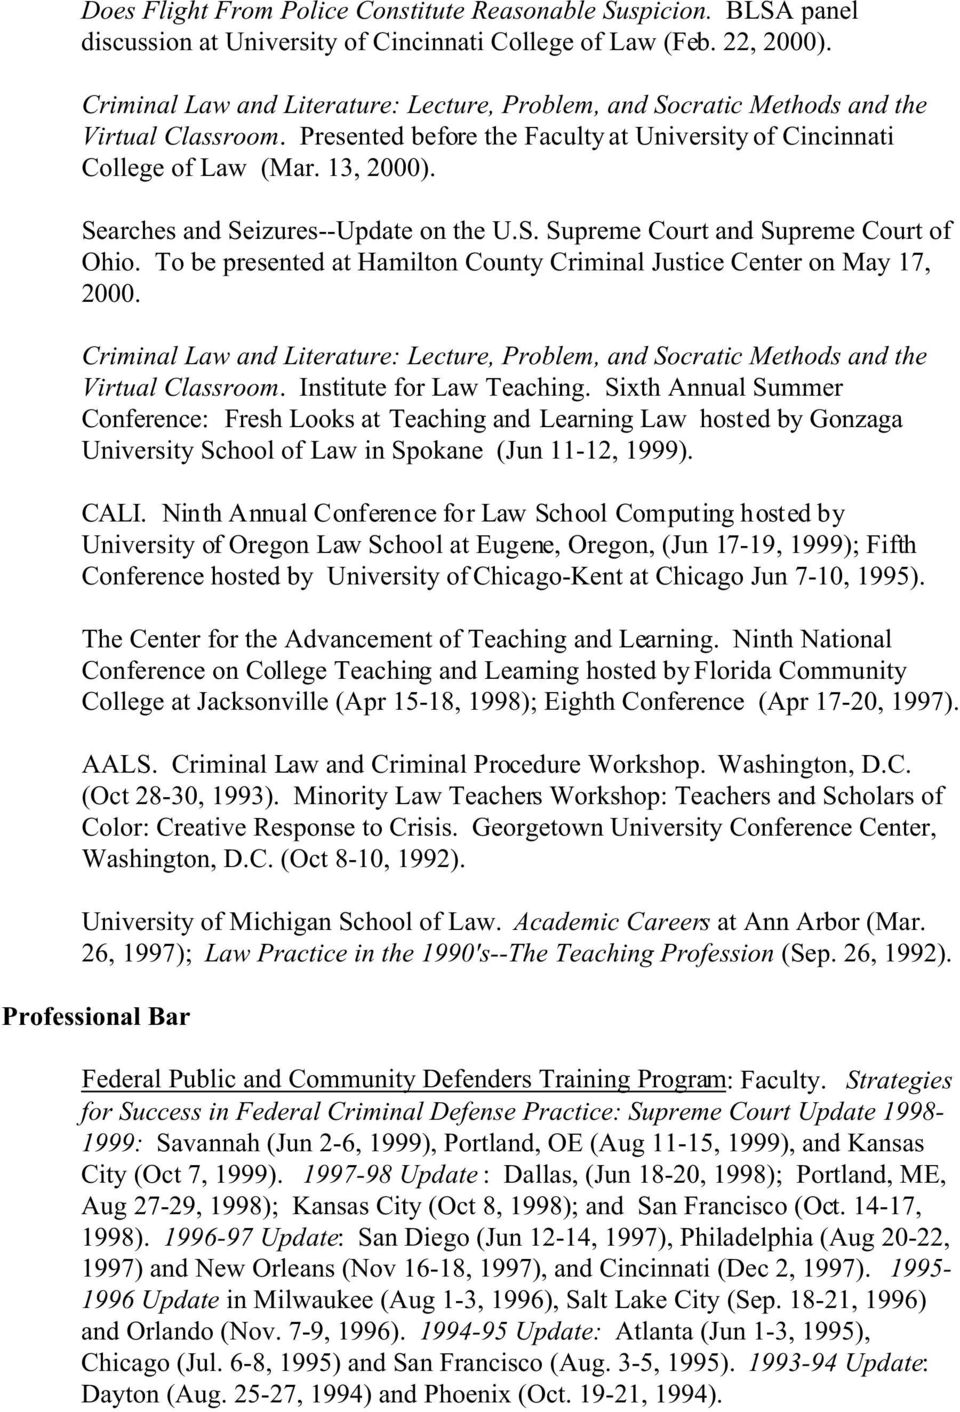 Searches and Seizures--Update on the U.S. Supreme Court and Supreme Court of Ohio. To be presented at Hamilton County Criminal Justice Center on May 17, 2000.